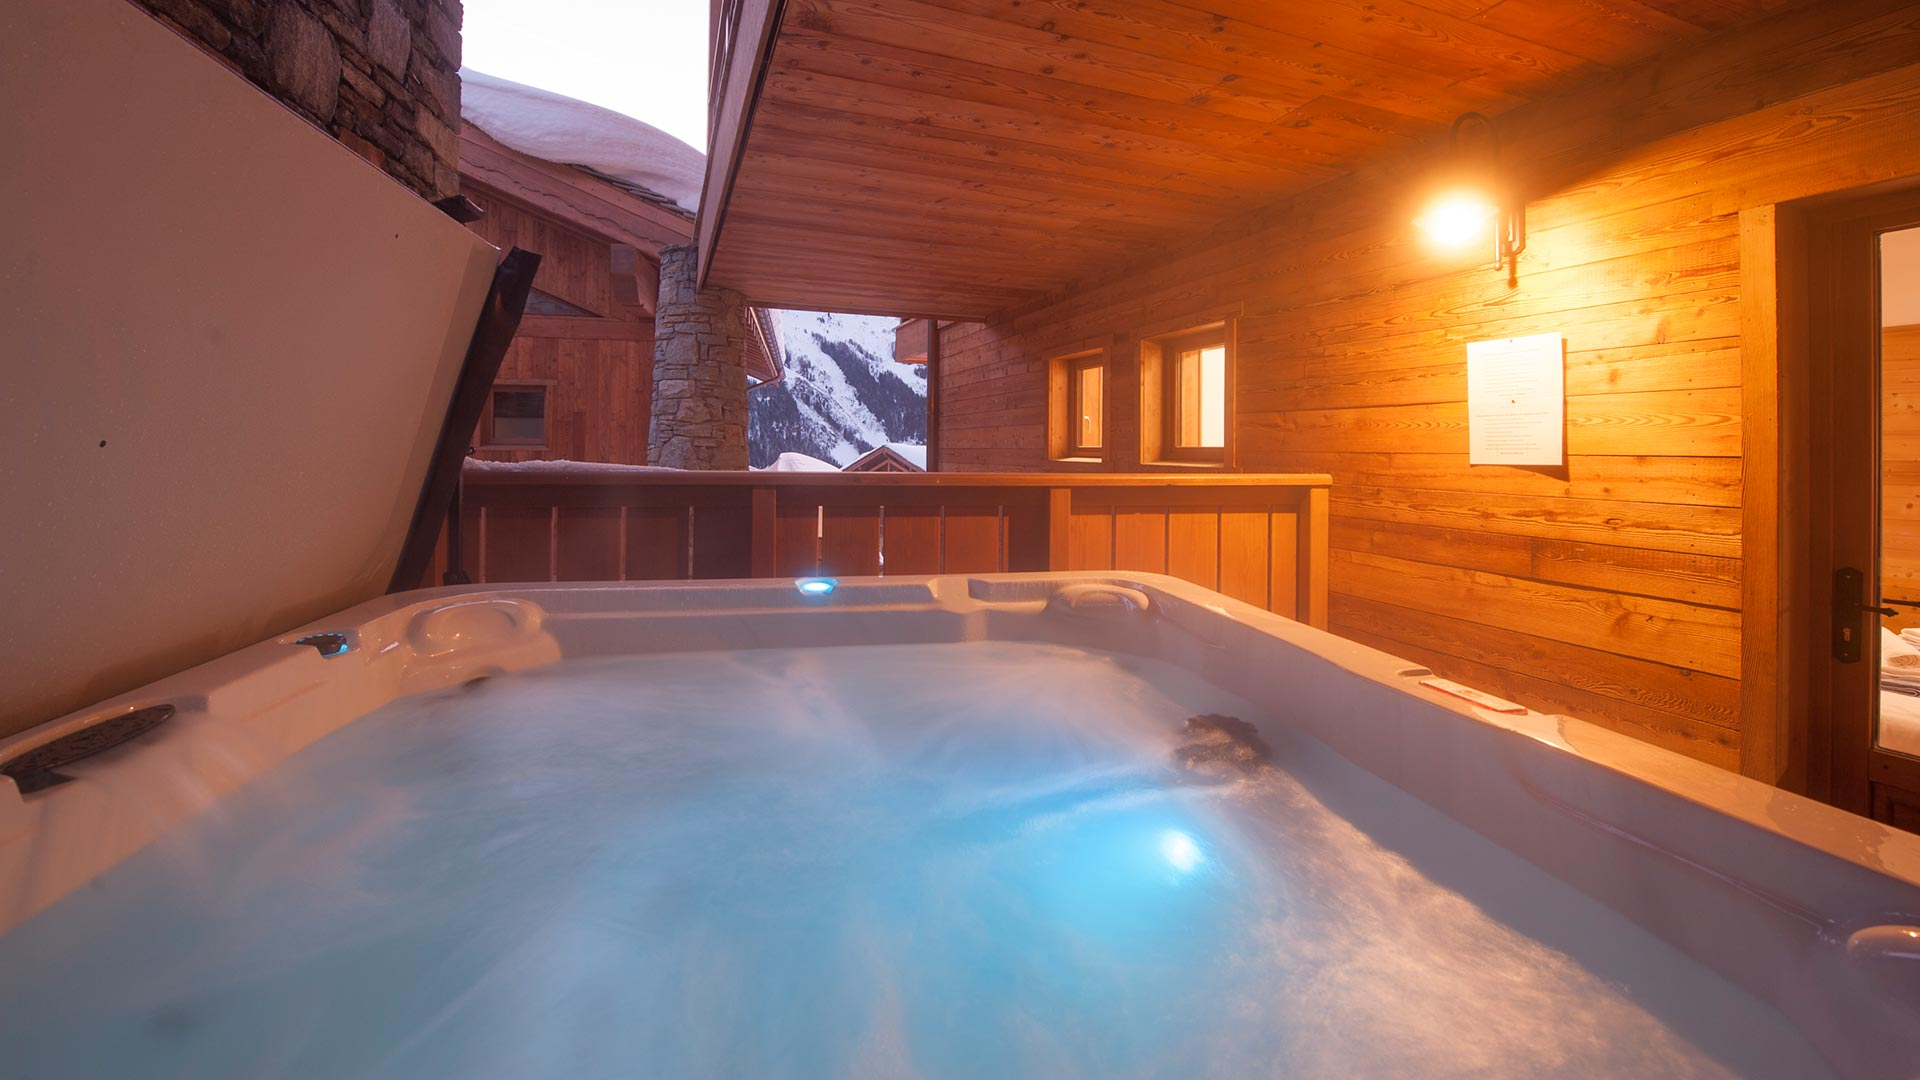 The Hot-tub in Luxury self-catered chalet Latour in Sainte Foy